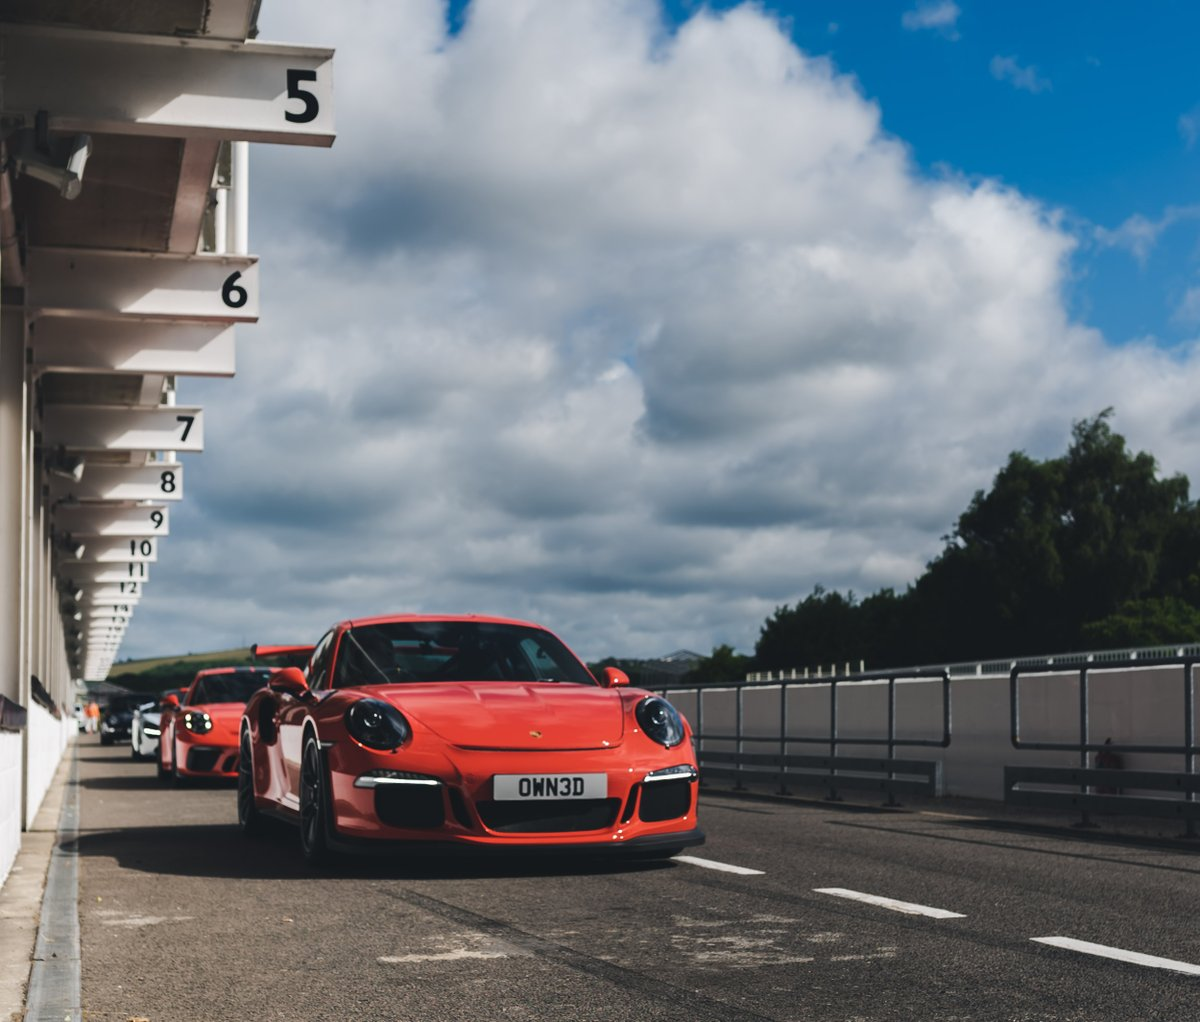 """""""Design must be functional and functionality must be translated into visual aesthetics, without any reliance on gimmicks that have to be explained."""" ~ Ferdinand Porsche  #porsche #design #quotes #saloneevents #goodwood #trackdays #supercars"""